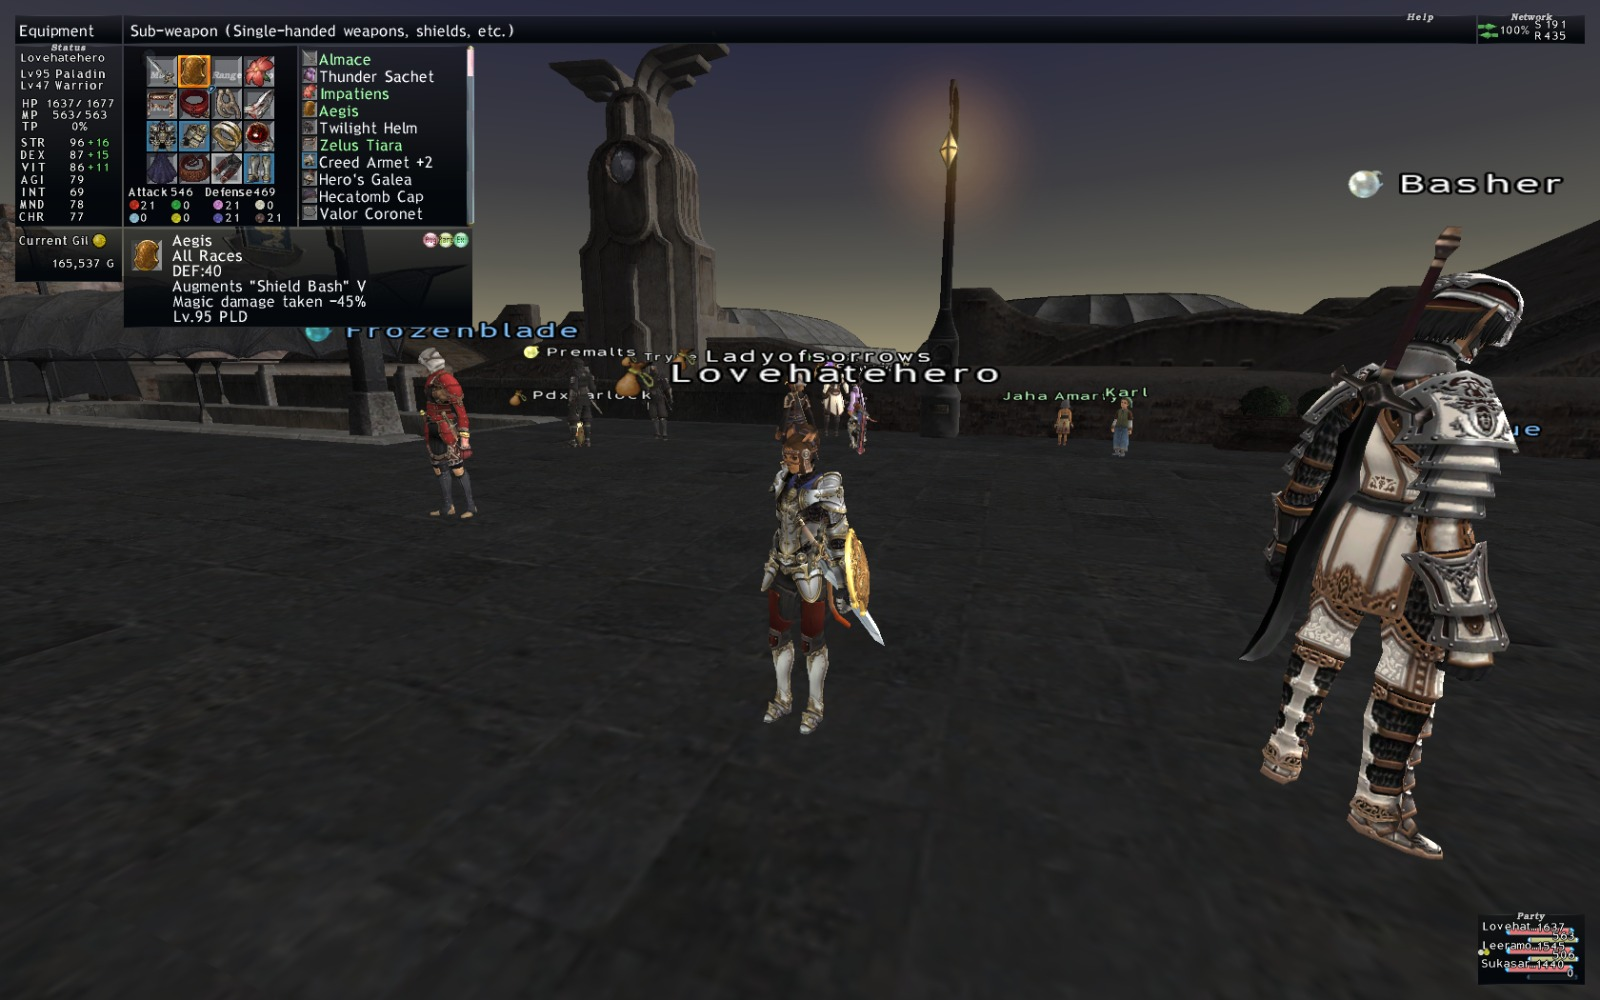 lovehatehero ffxi doing this that comes love down proph also caliburn grats tool shame like prophett moirai leviathan list relicmythic weapons seems completed known time long forever